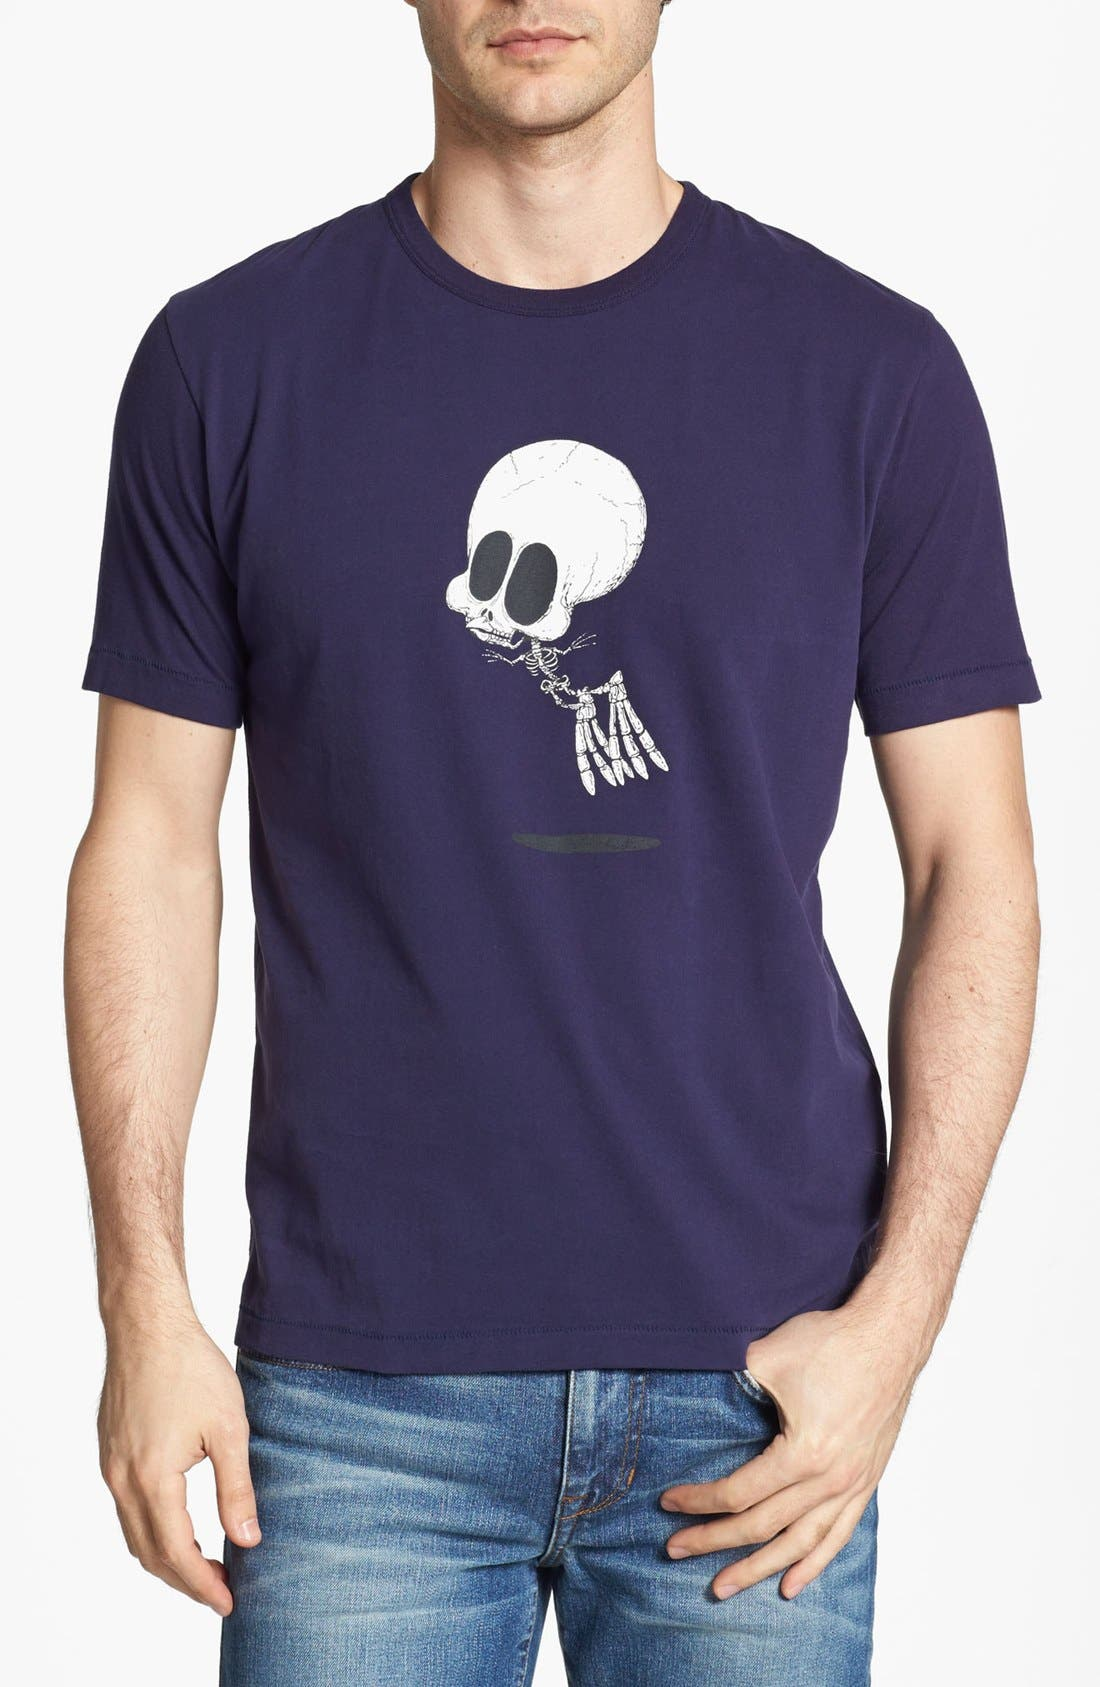 Main Image - French Connection 'Flying Skull' T-Shirt